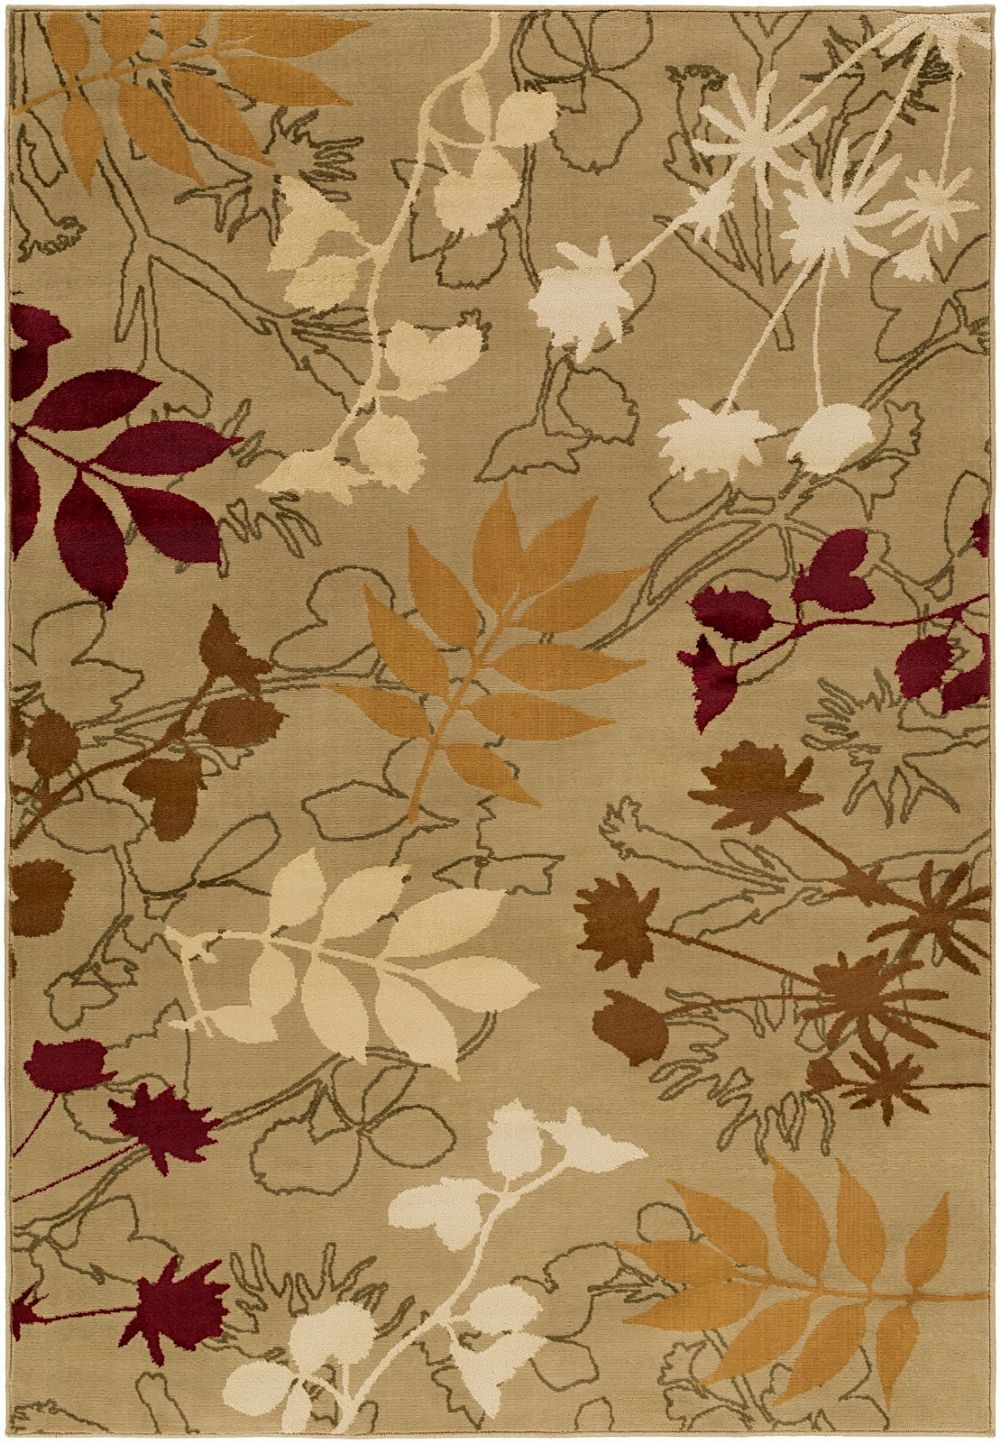 surya mountain home country & floral area rug collection